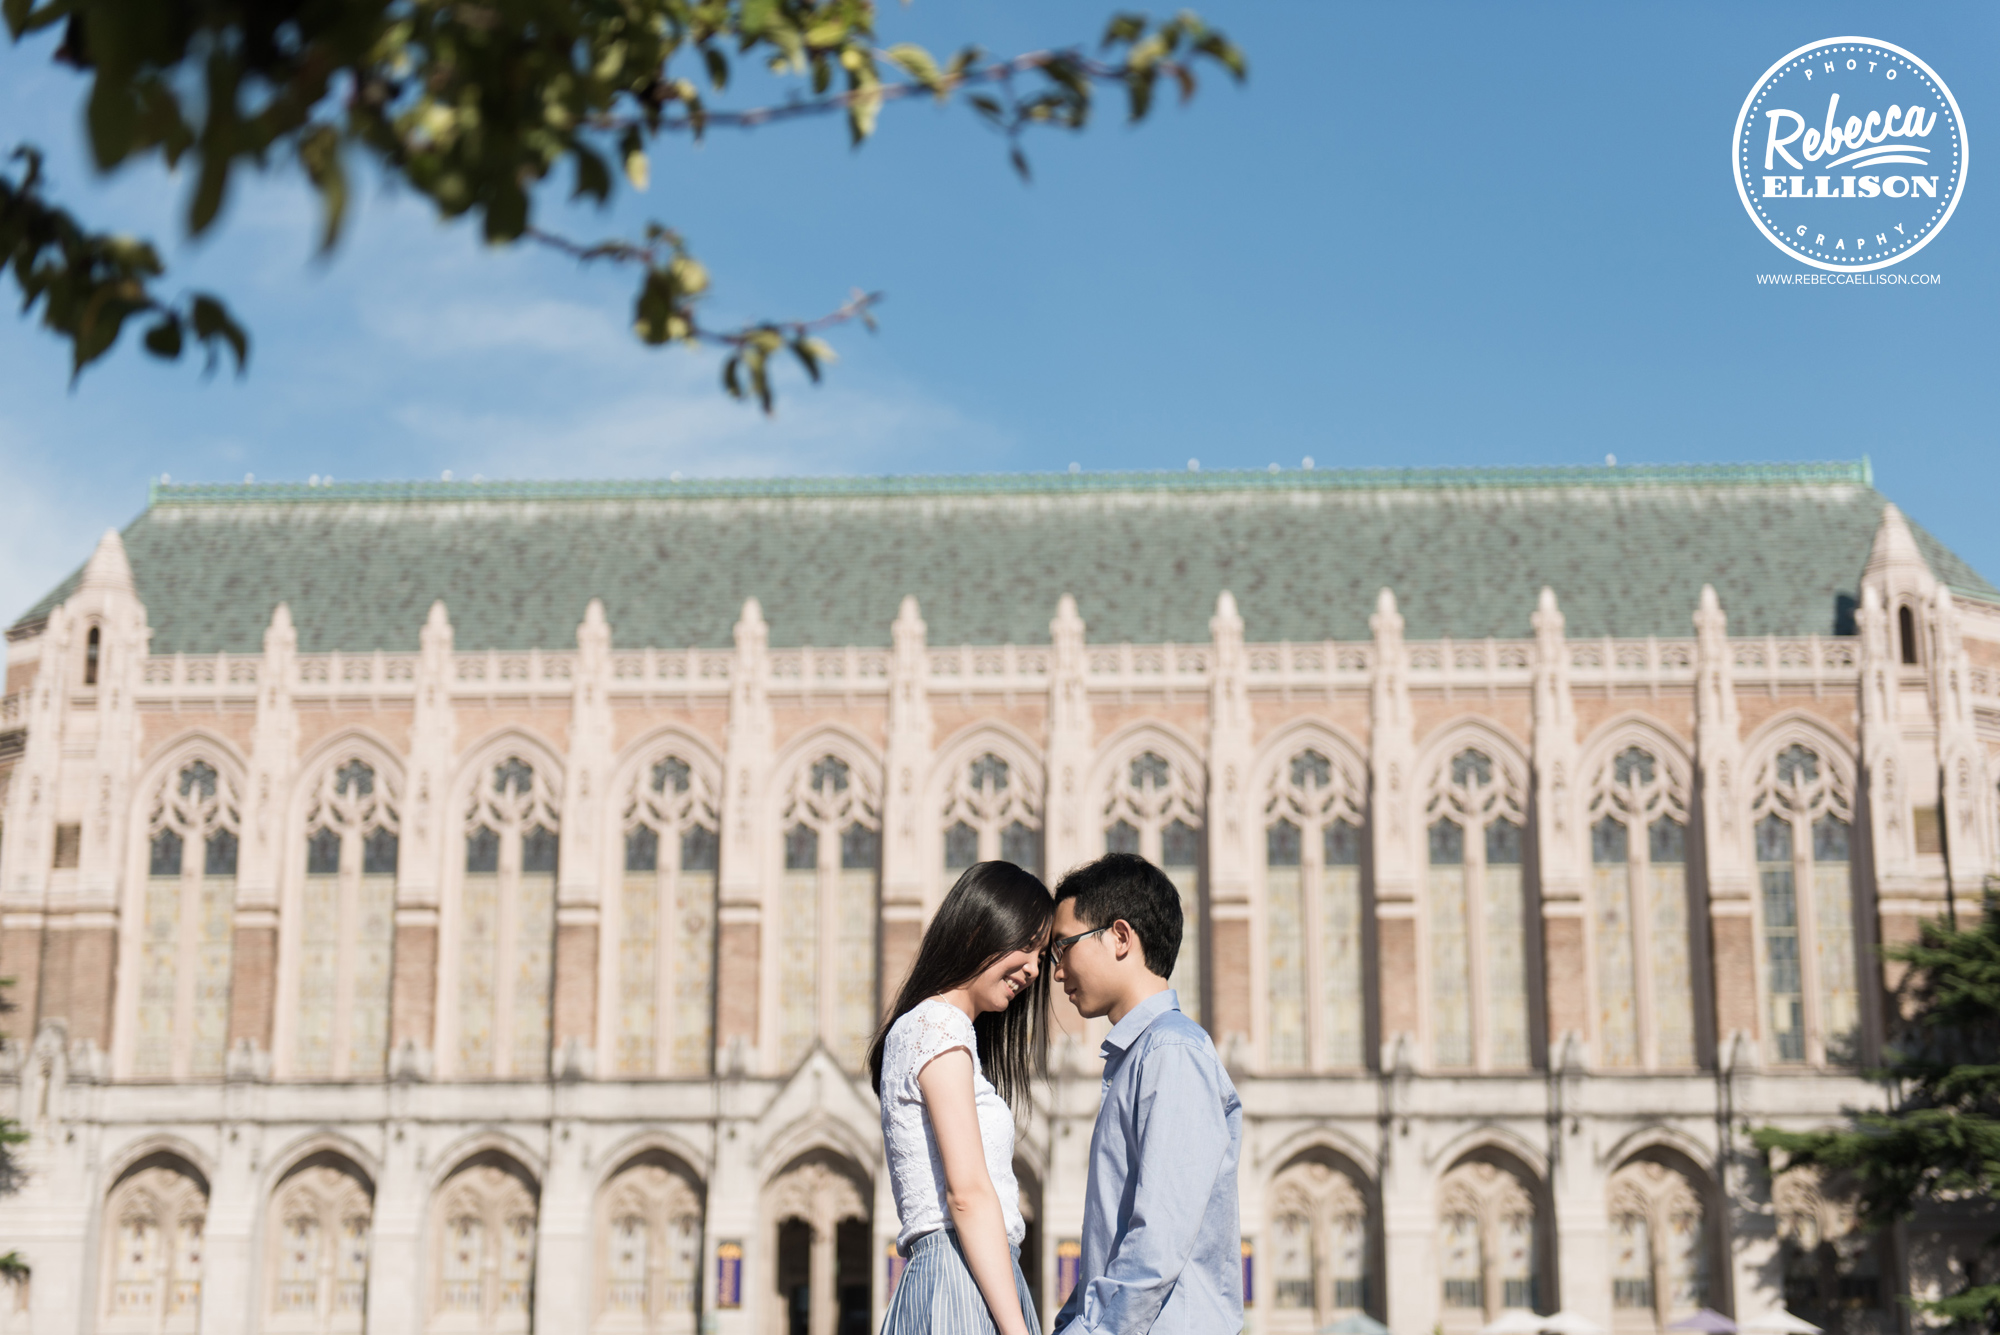 Outdoor engagement portraits in front of University of Washington's Kane Hall photographed by Seattle Engagement Photographer Rebecca Ellison